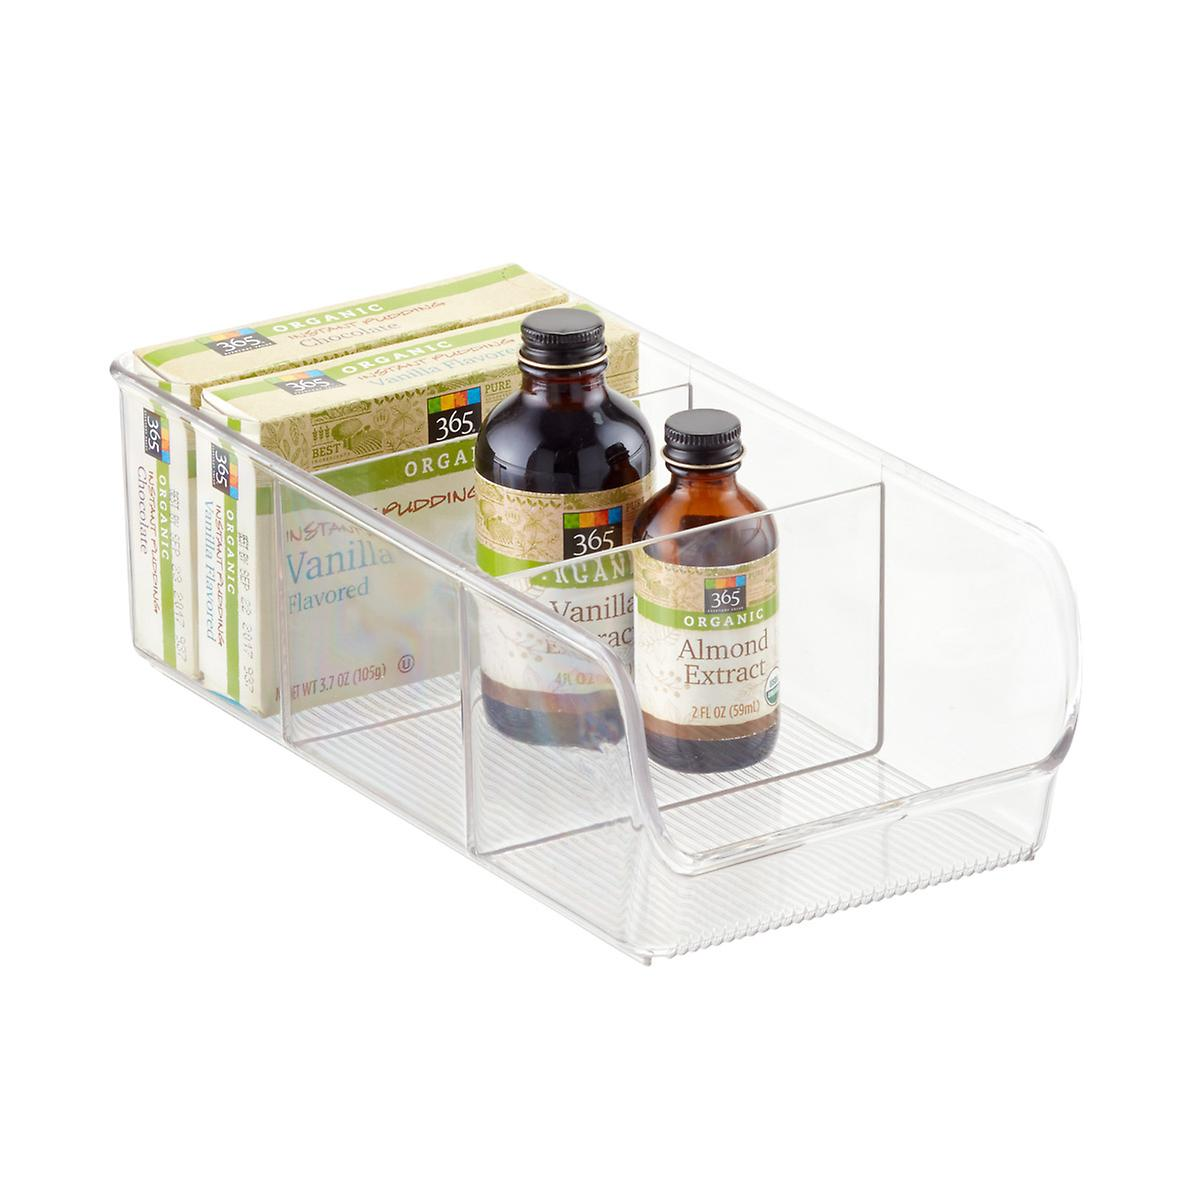 Kitchen Shelf Organiser: InterDesign Linus 3-Section Divided Cabinet Organizer